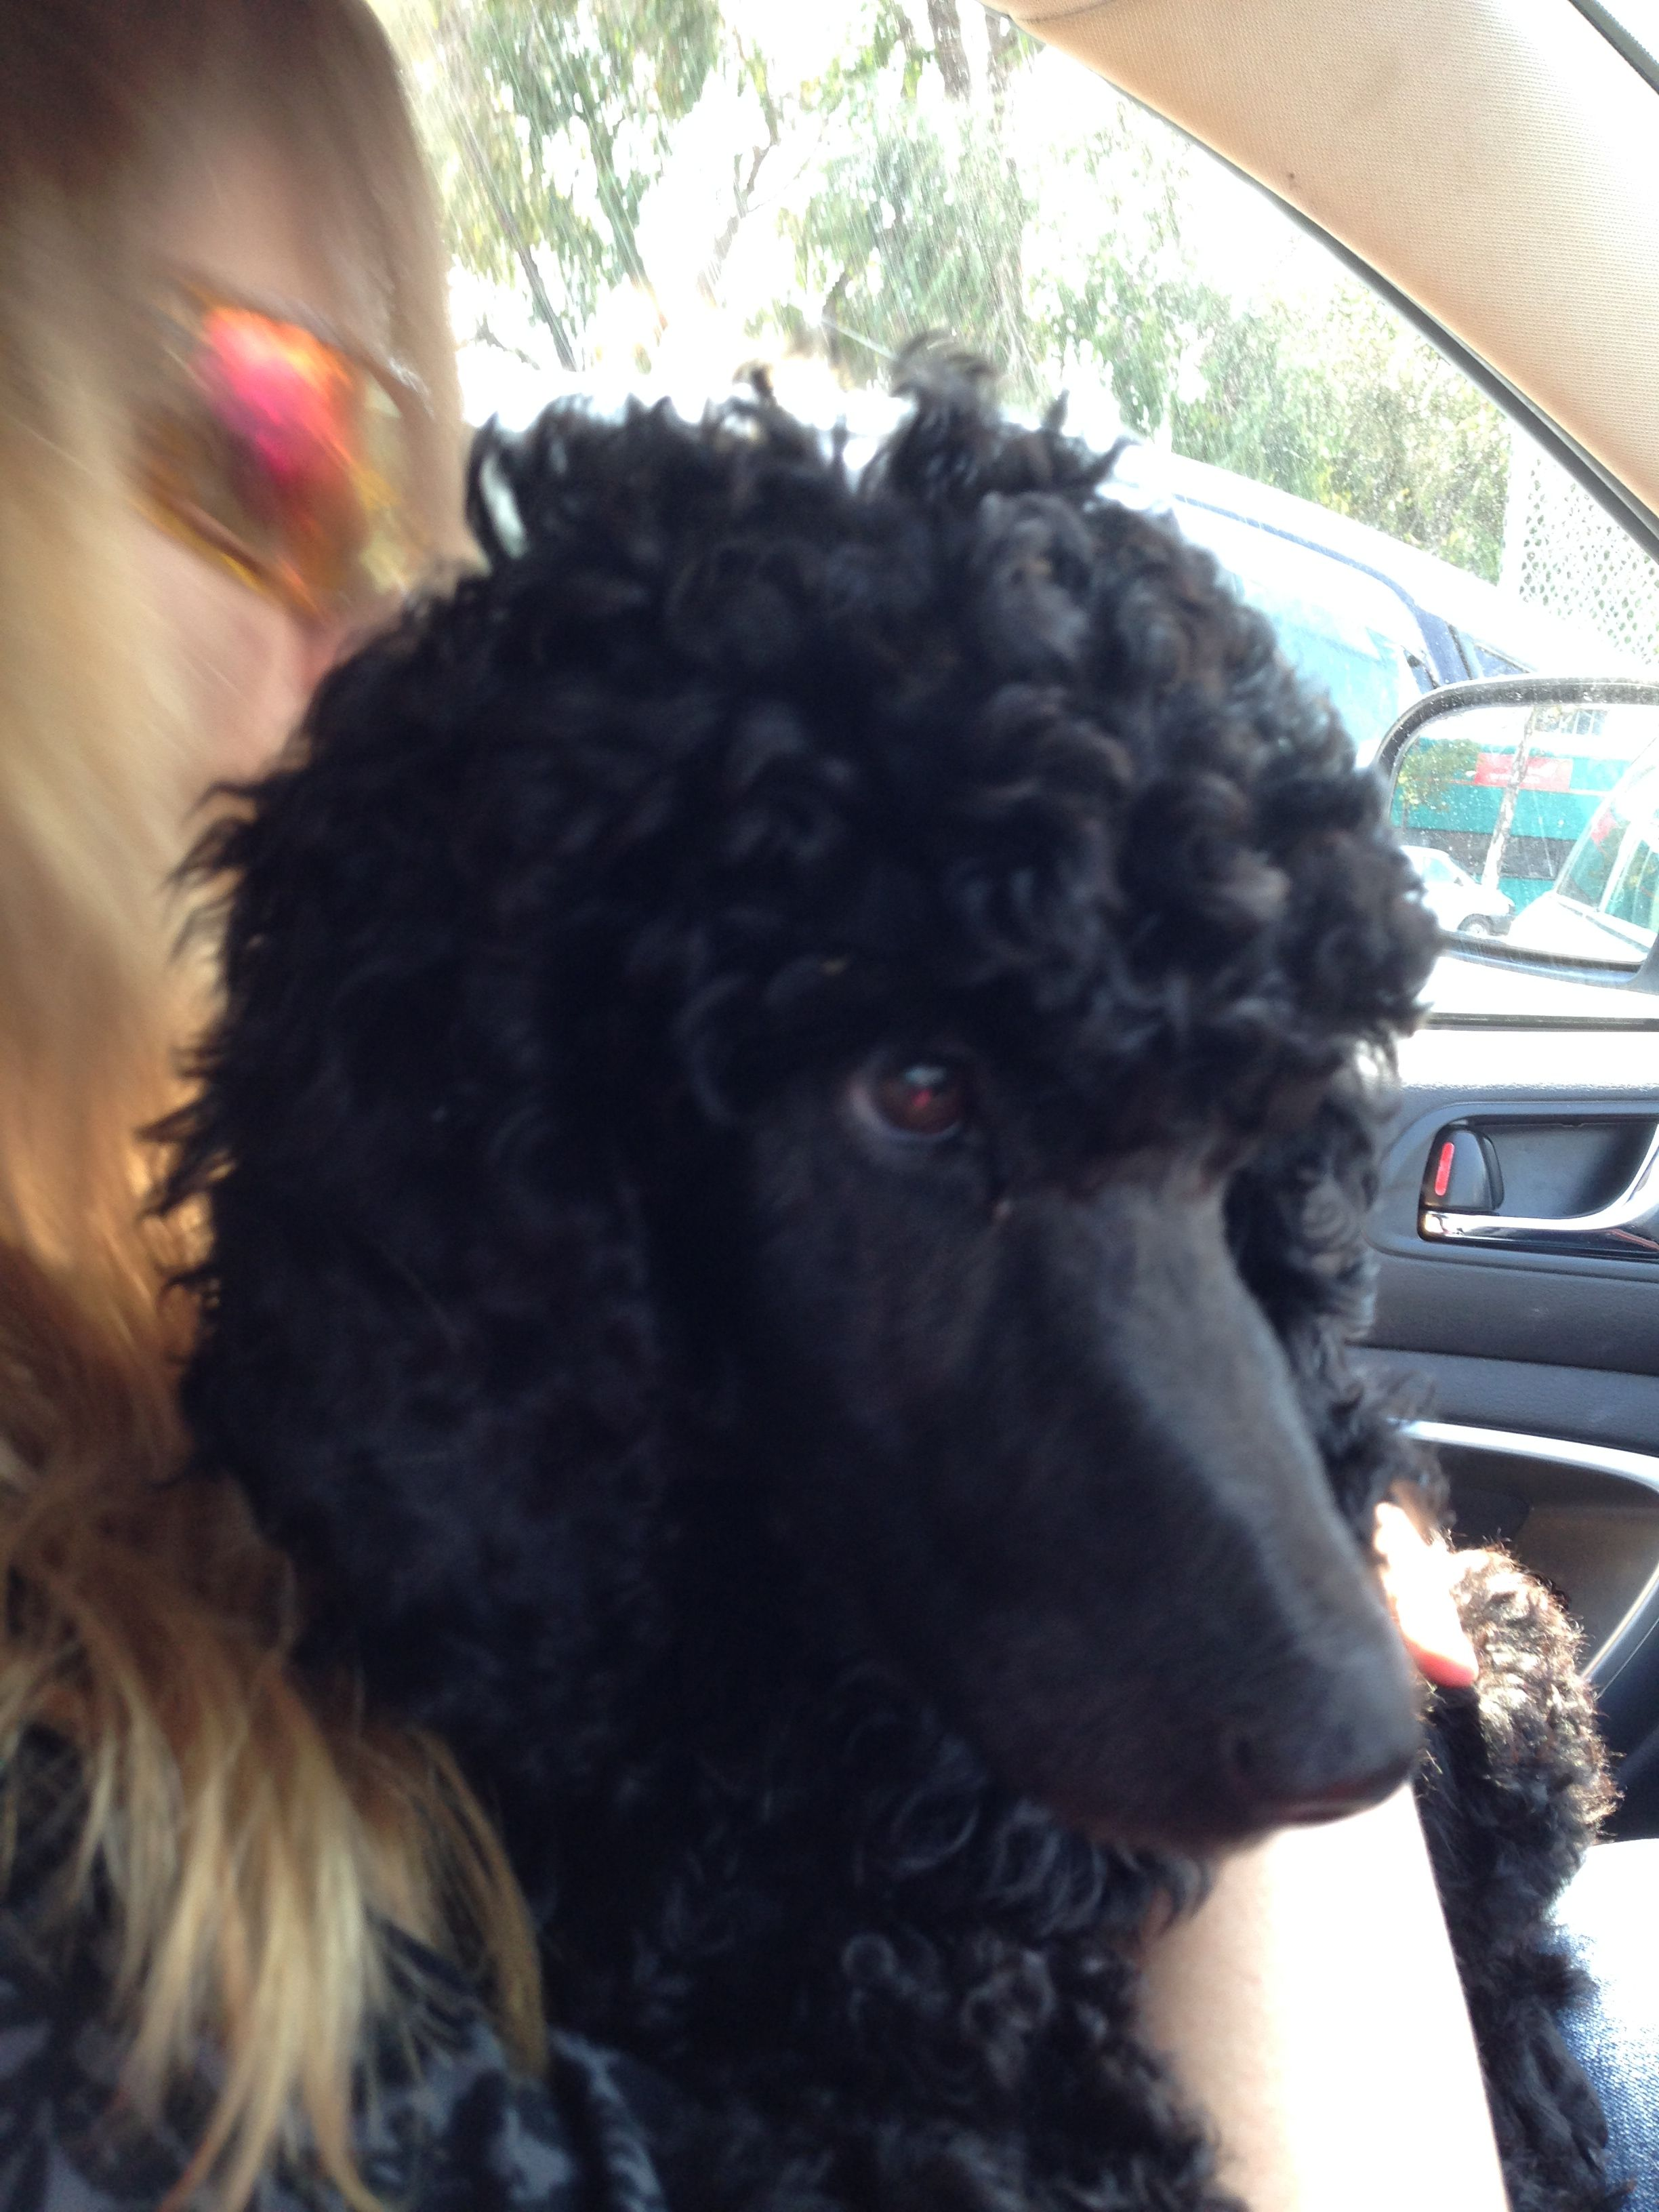 My Beautiful Standard Poodle Puppy On The Way Home From Picking